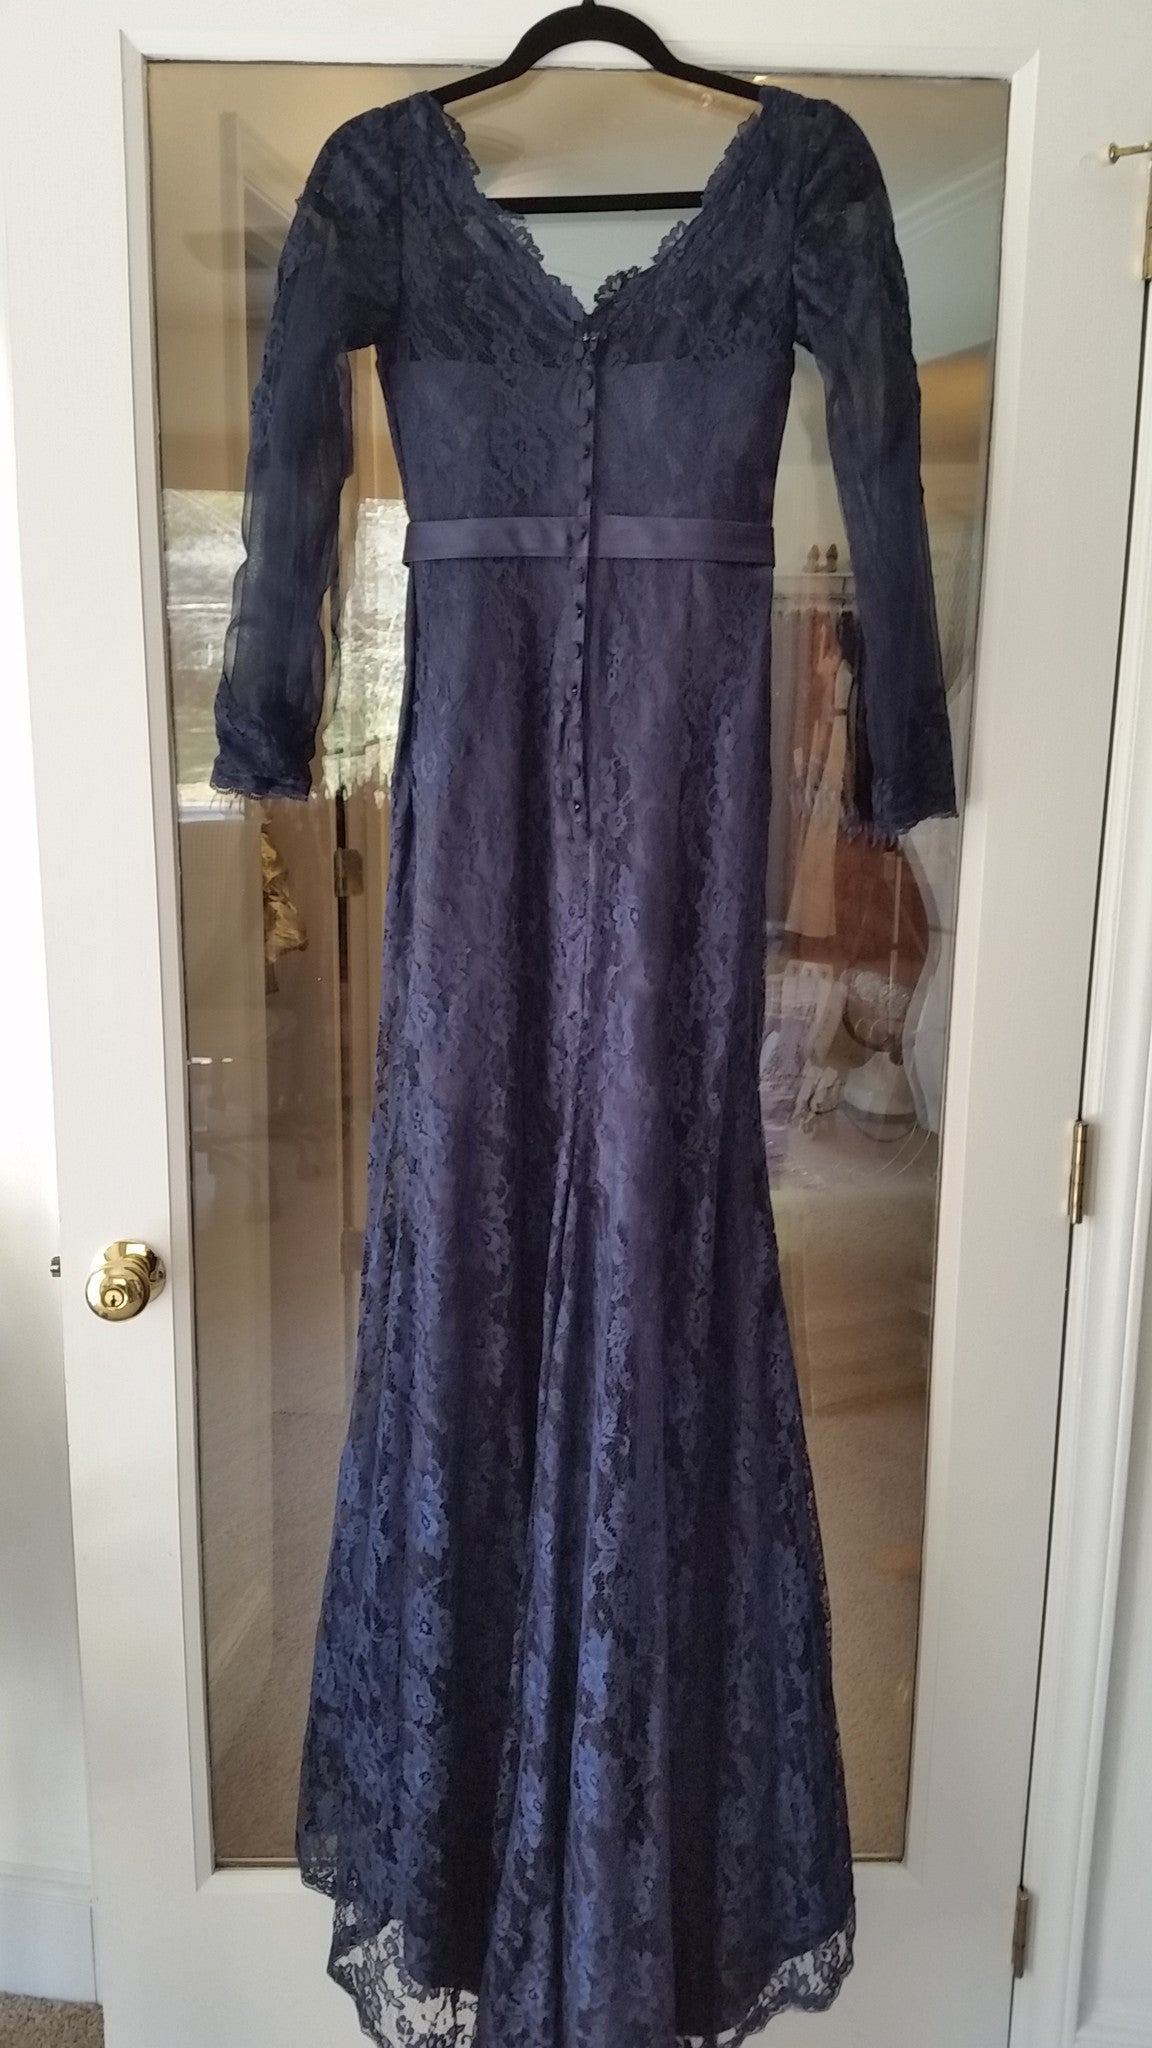 Blue Maxi Three Quarter Sleeves Jewel Dress by Dressed Charlotte, Size 2